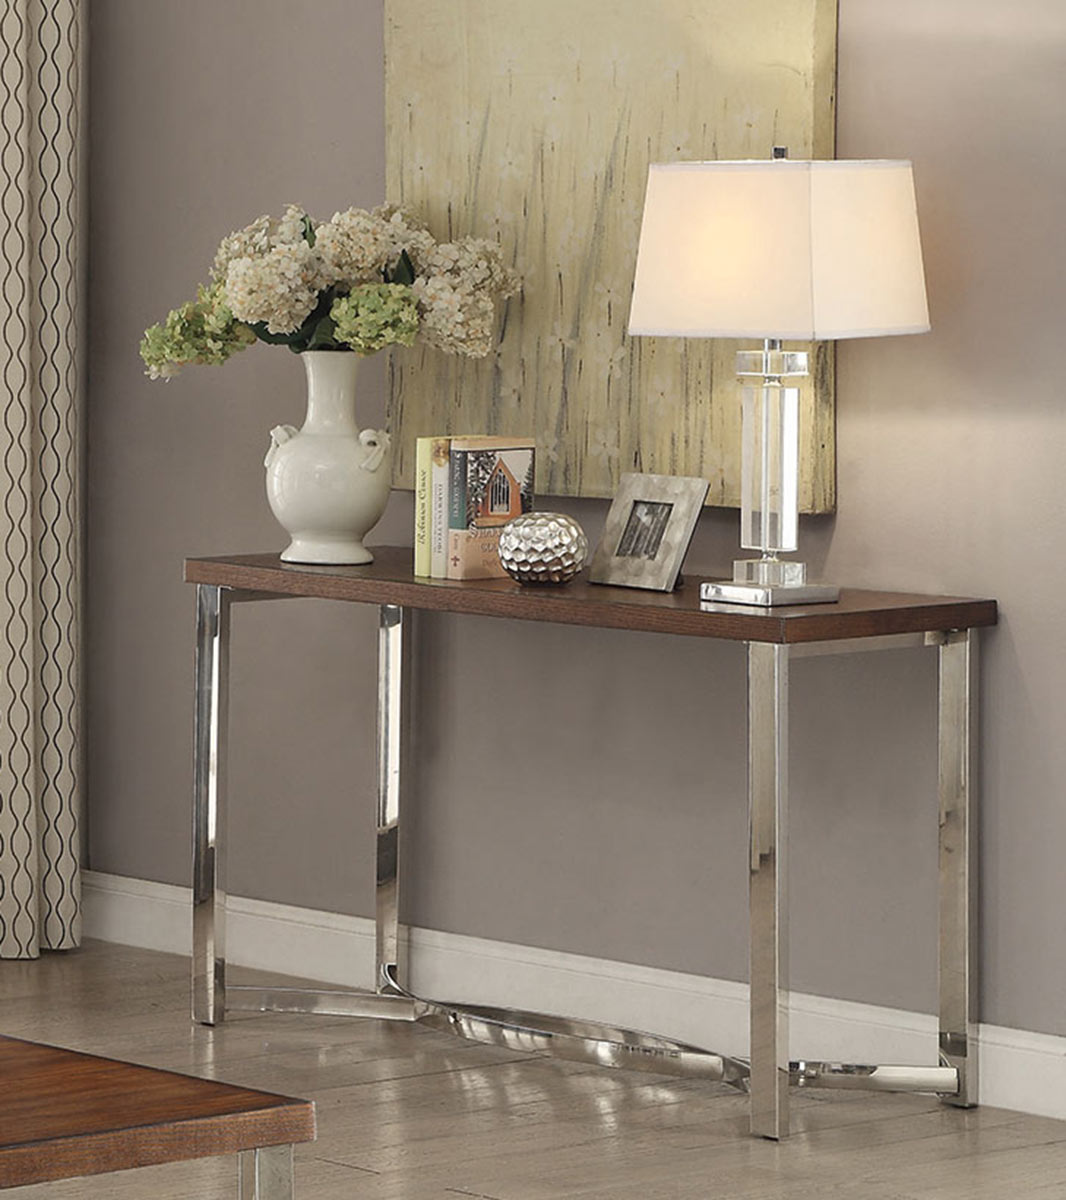 Chrome Sofa Table Coaster Custer Chrome Sofa Table With. American Girl Doll Desk. Clock End Table. Poker Table Cover. Travel Desk Executive. Pottery Barn Kids Desk. Atomic Foosball Table. Oak Rolltop Desk. Table With Outlets